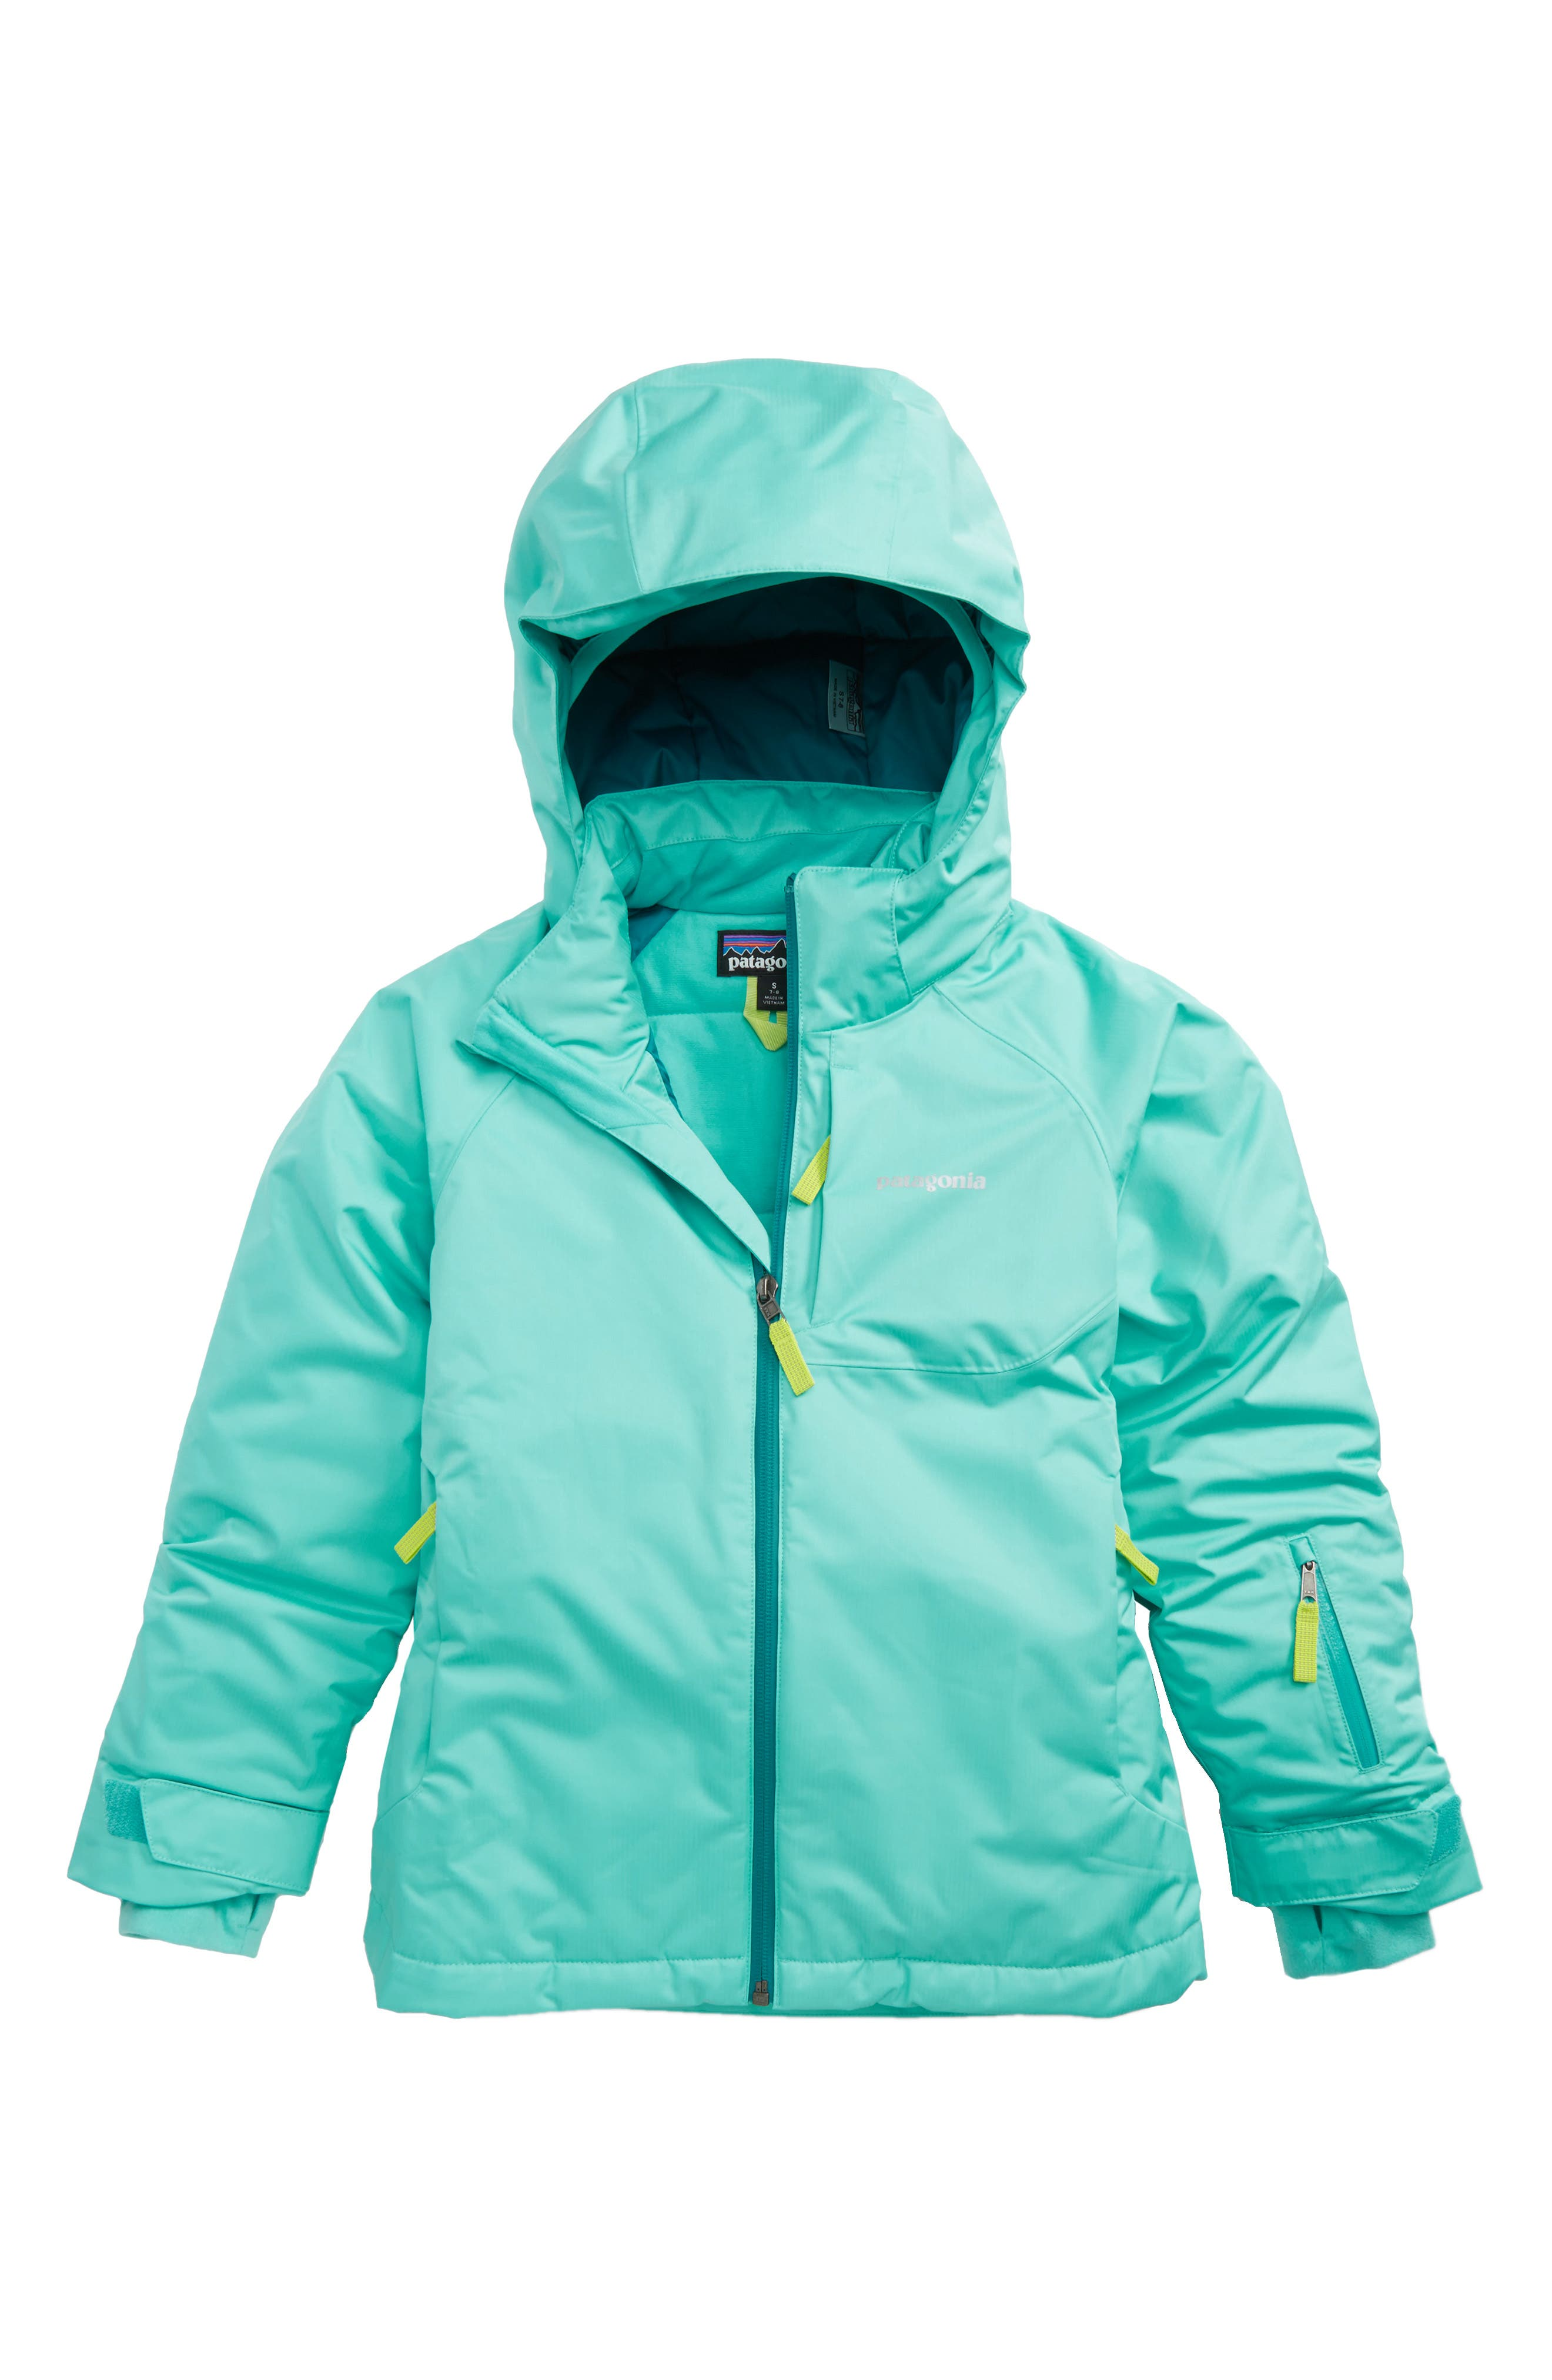 Snowbelle Waterproof Insulated Jacket,                         Main,                         color, Strait Blue